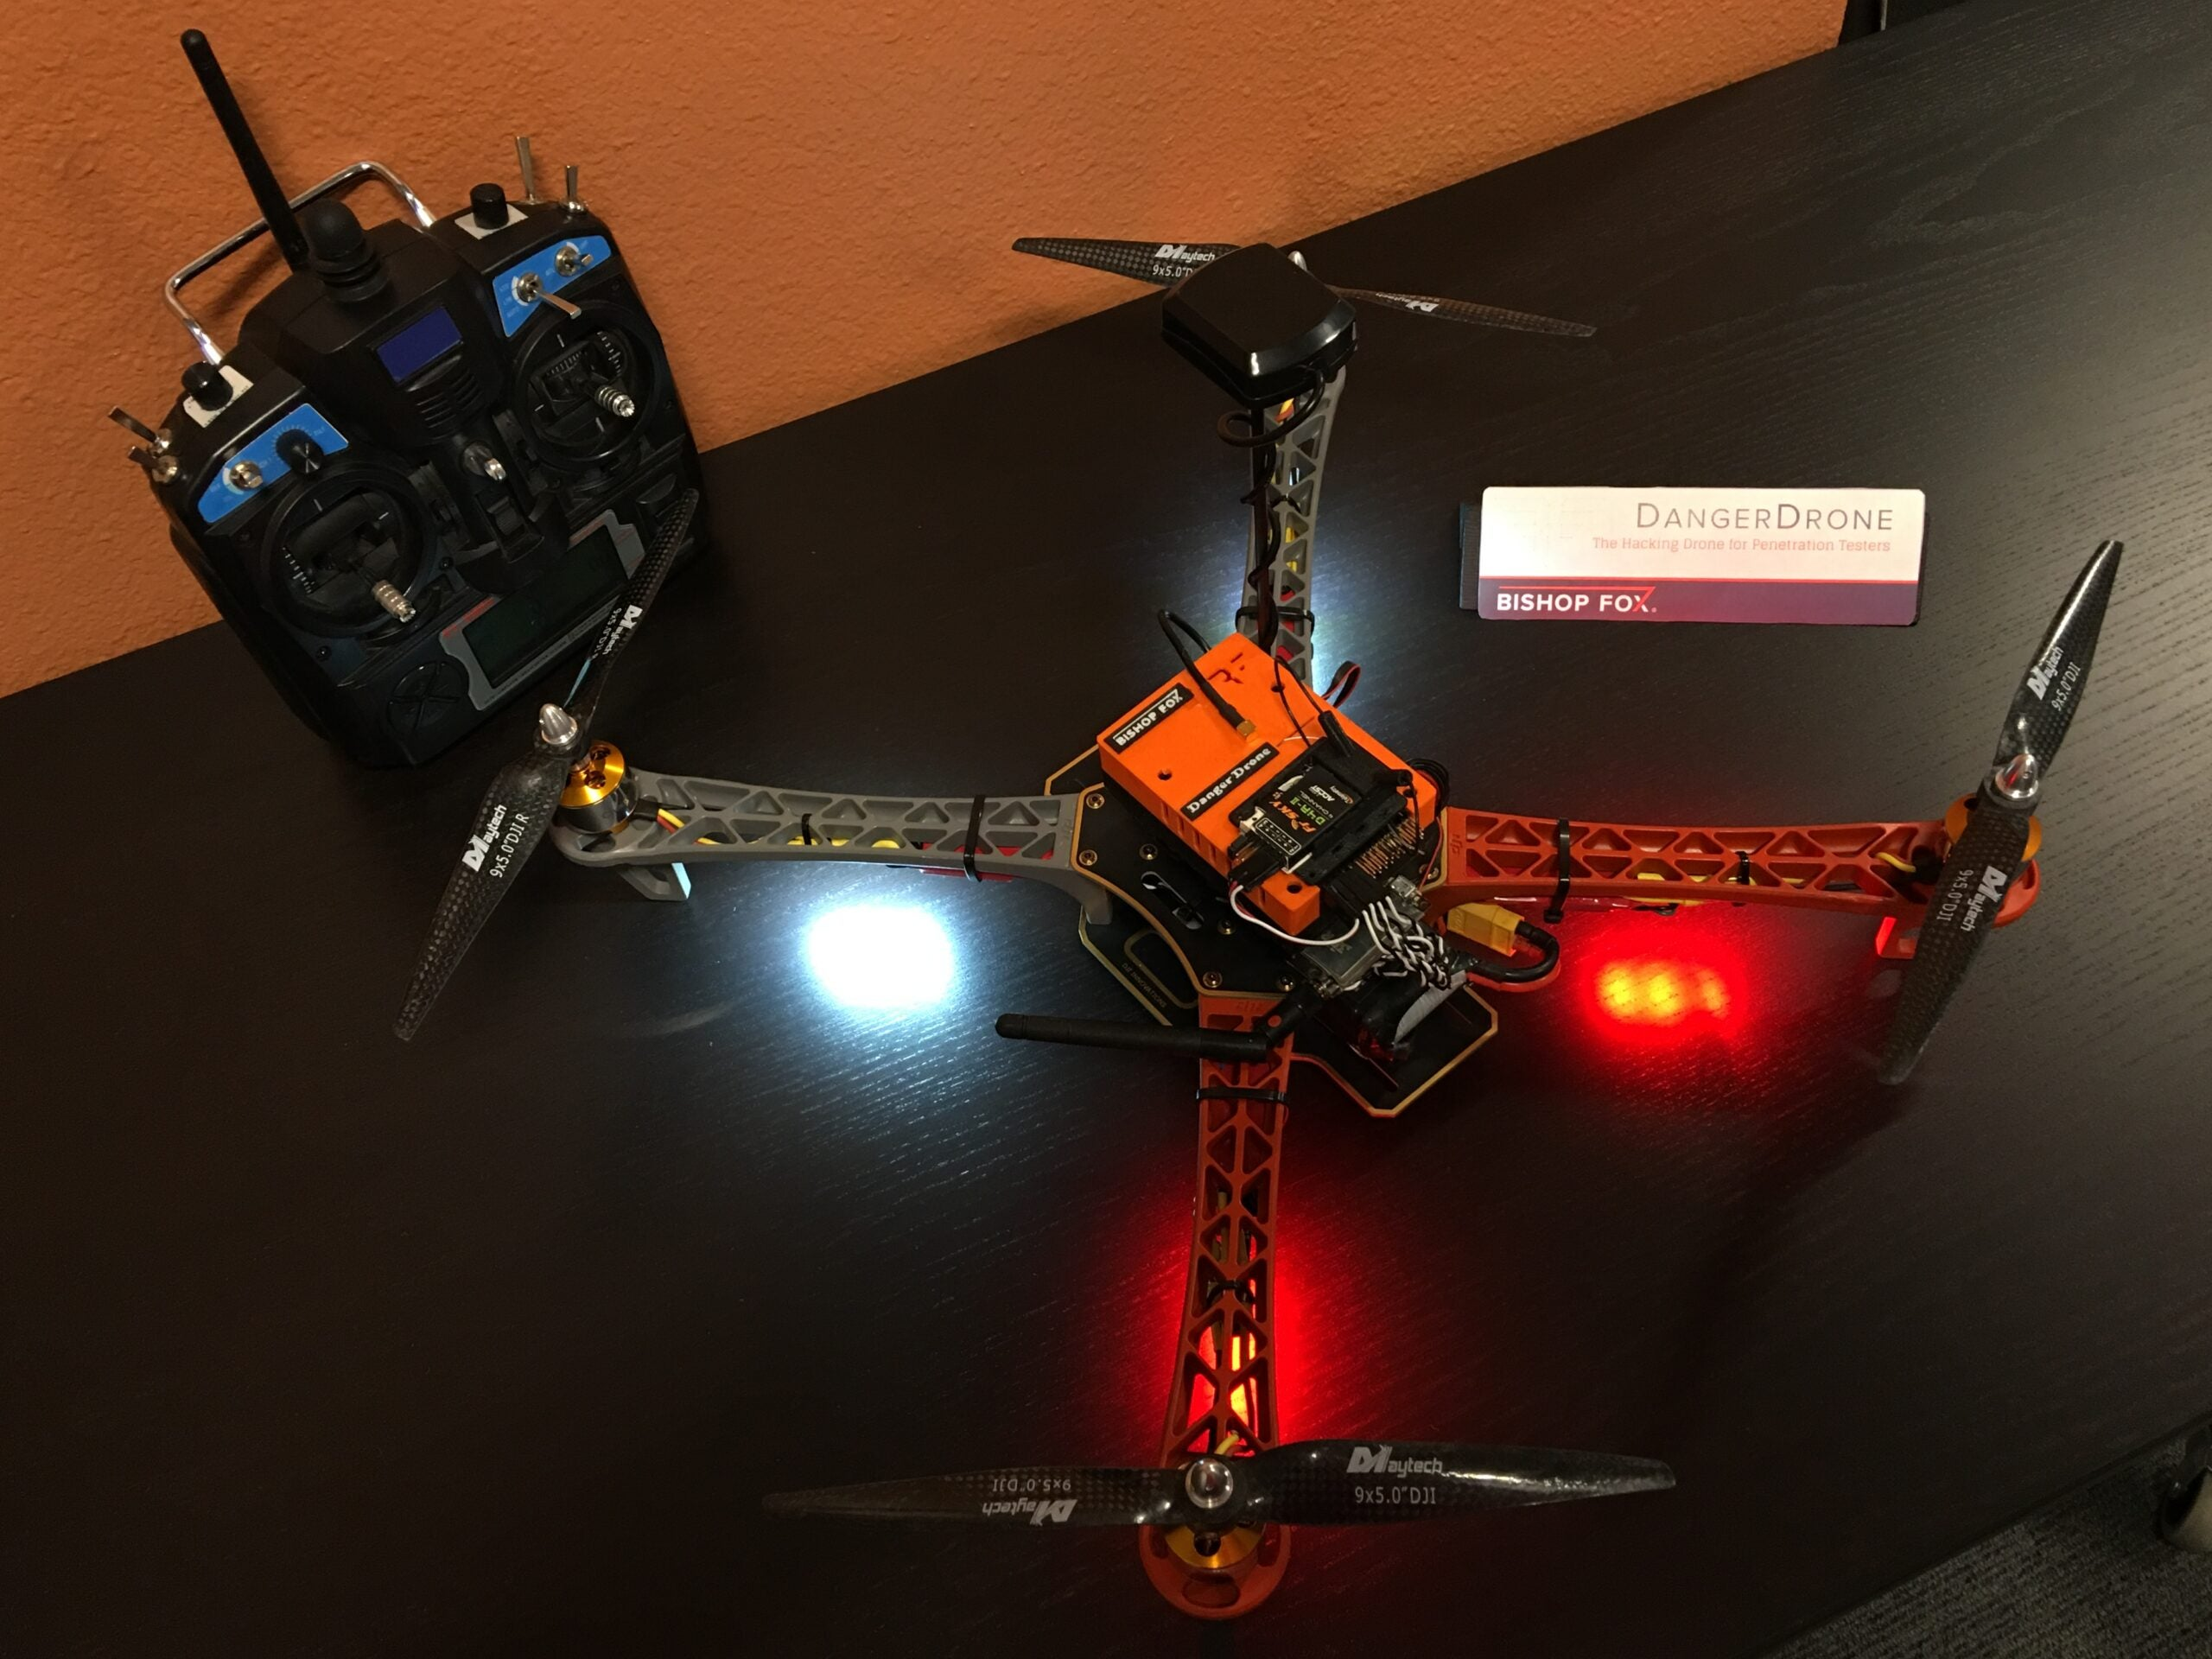 Researchers Put A Tiny Computer On A Drone To Make It A Hacking Machine